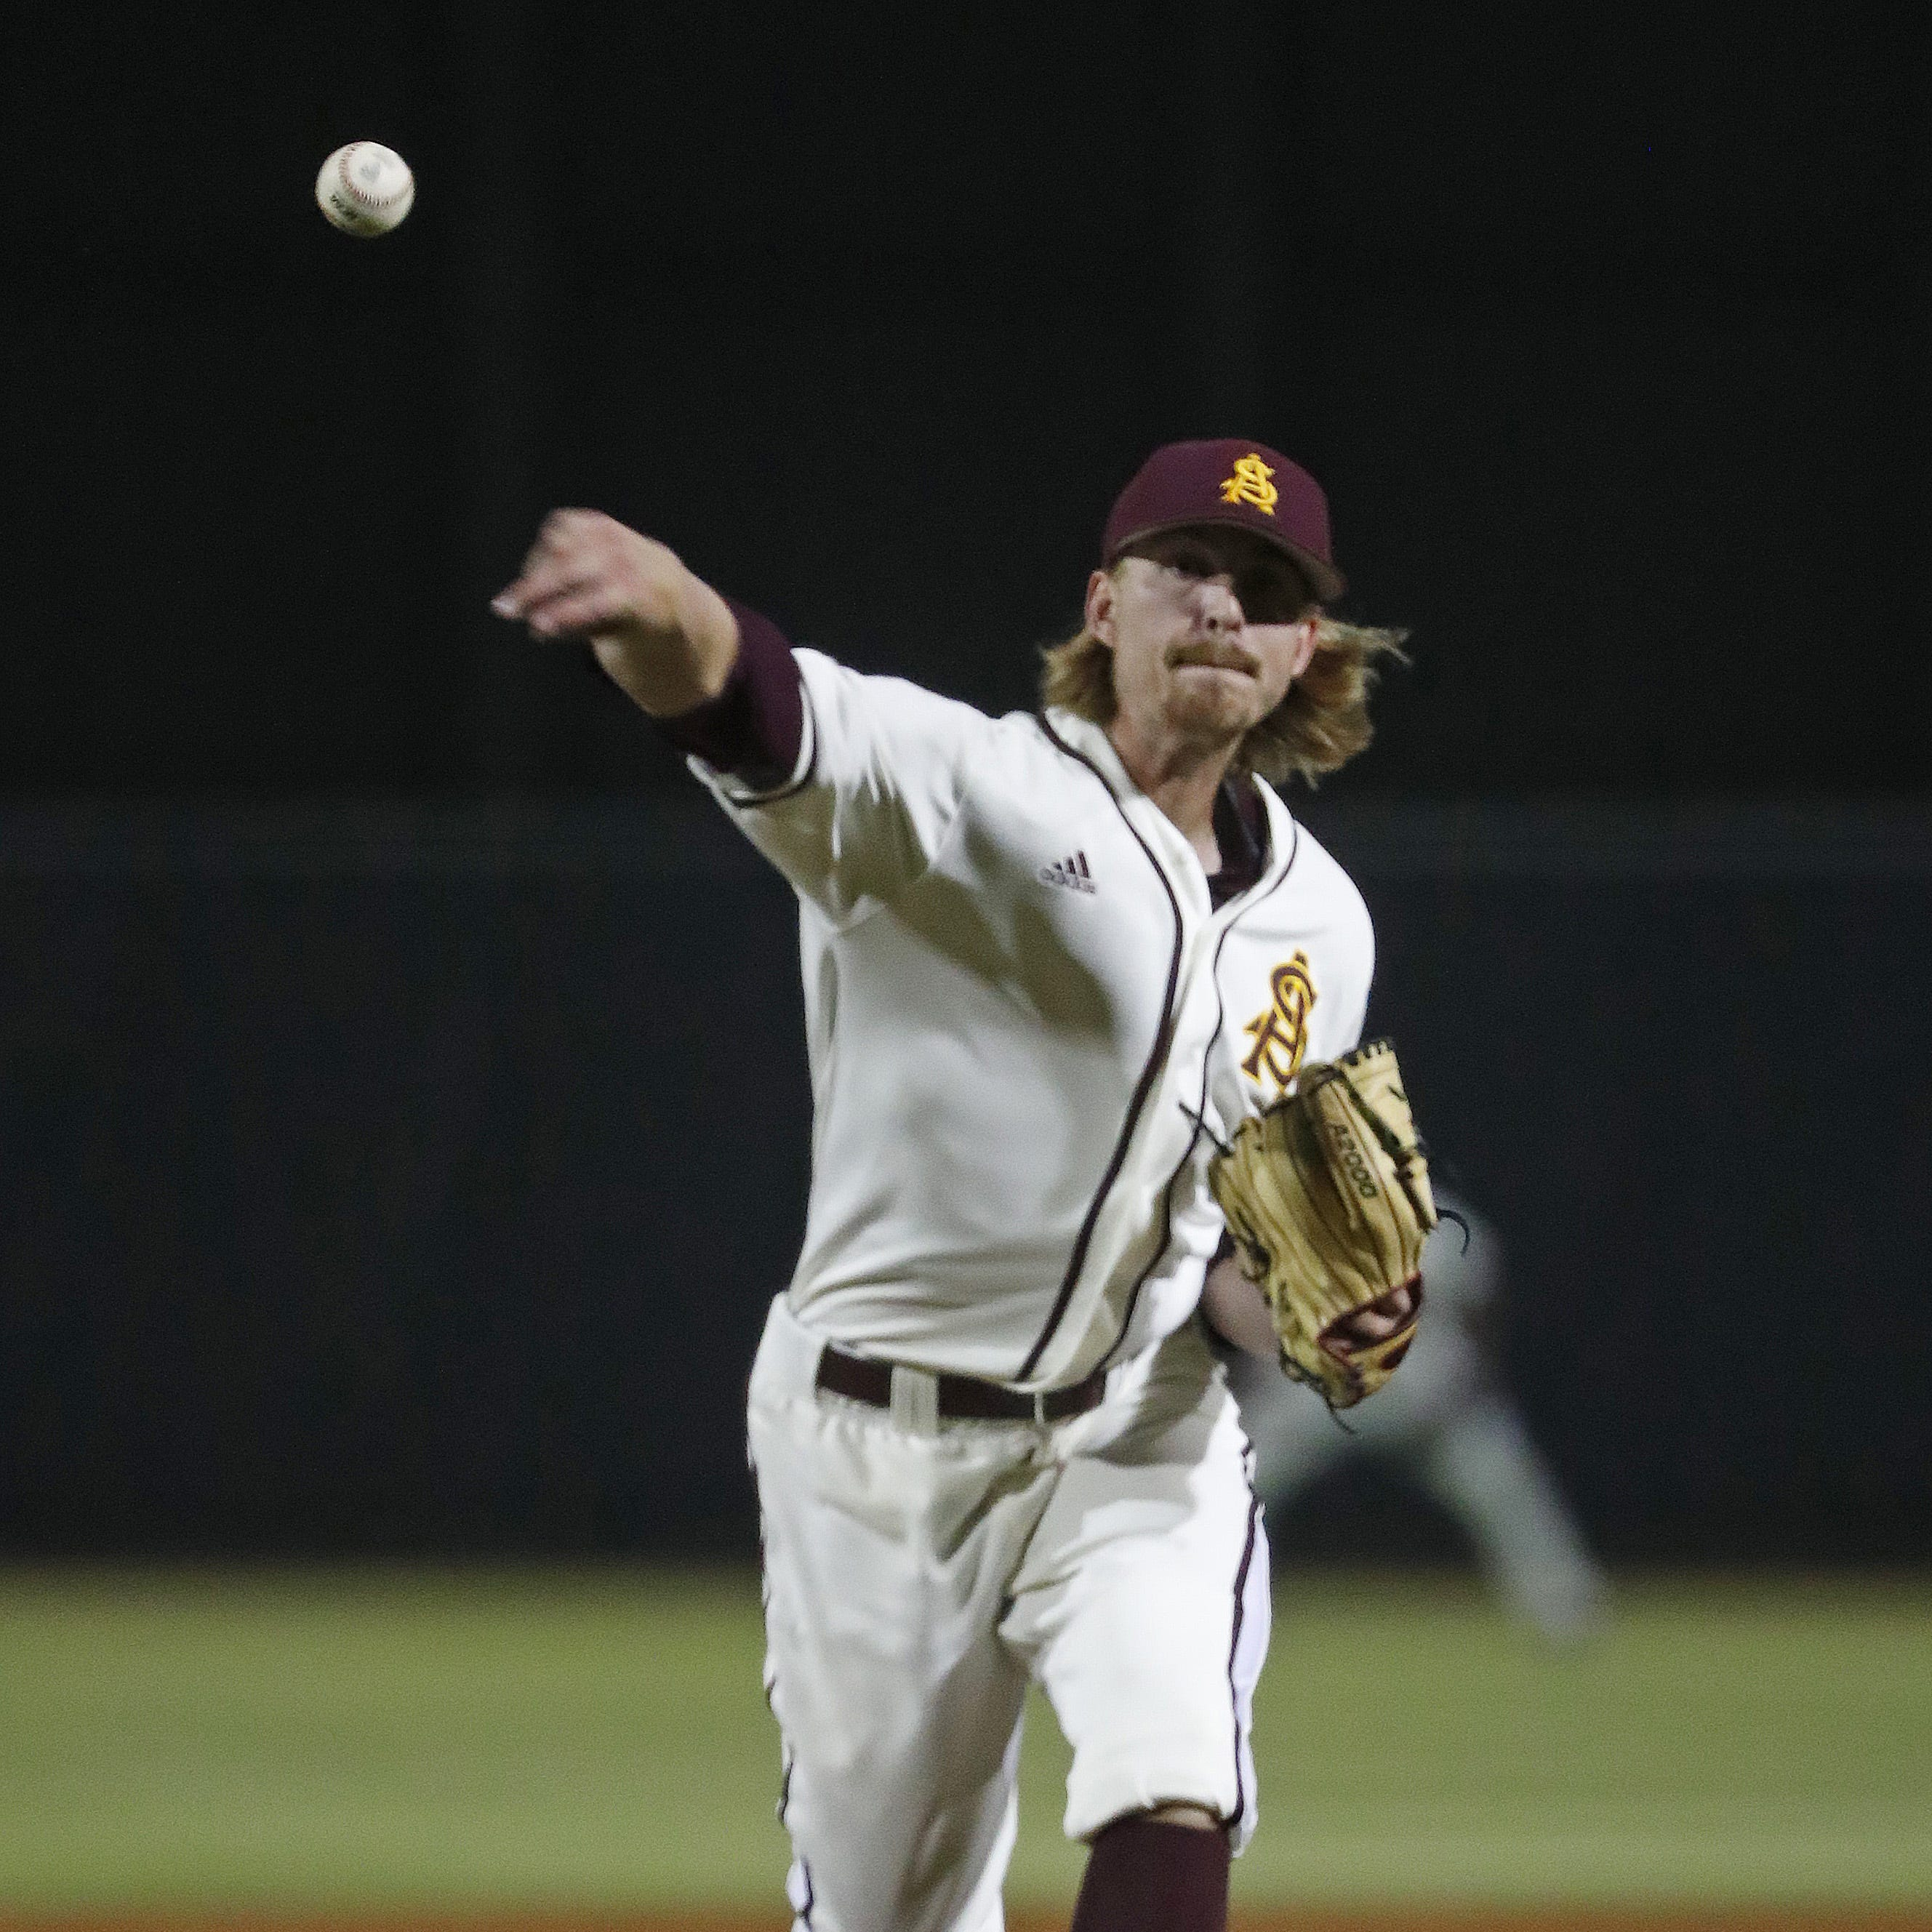 No. 9 ASU baseball clinches rivalry series win behind solid bounce back from Vander Kooi